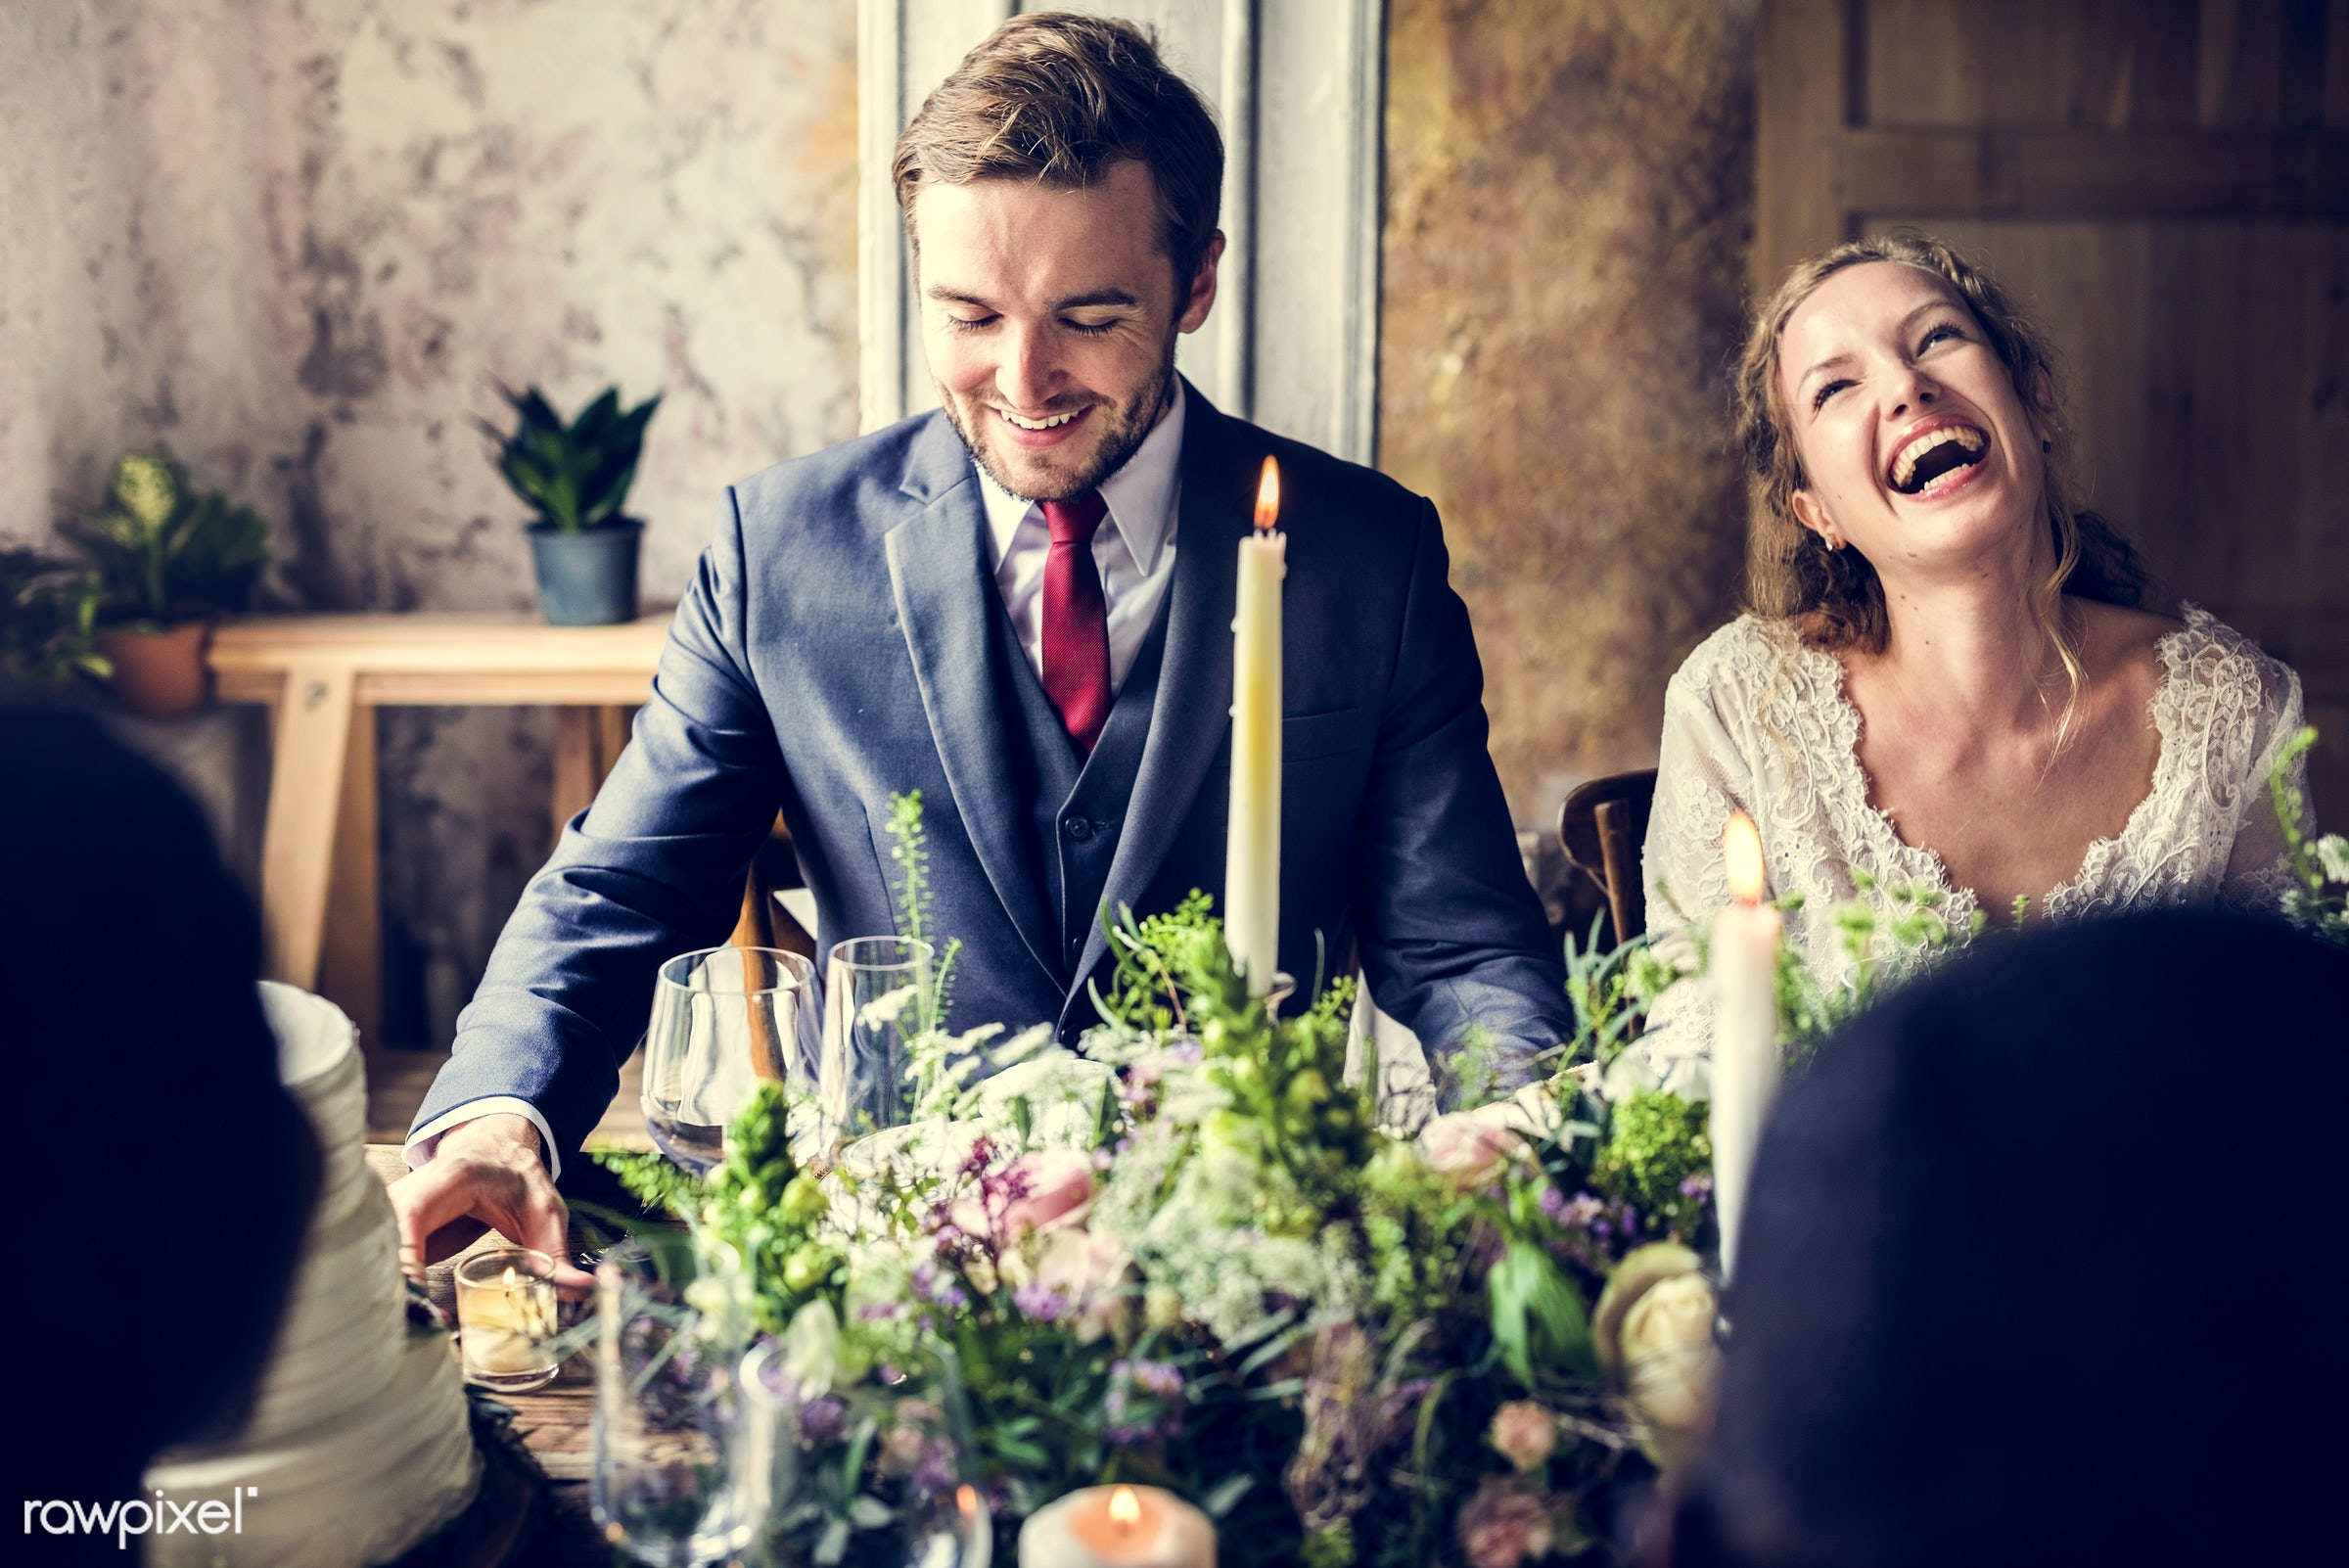 expression, person, occasion, smitten, husband, restaurant, people, together, love, married, friends, woman, event, family,...